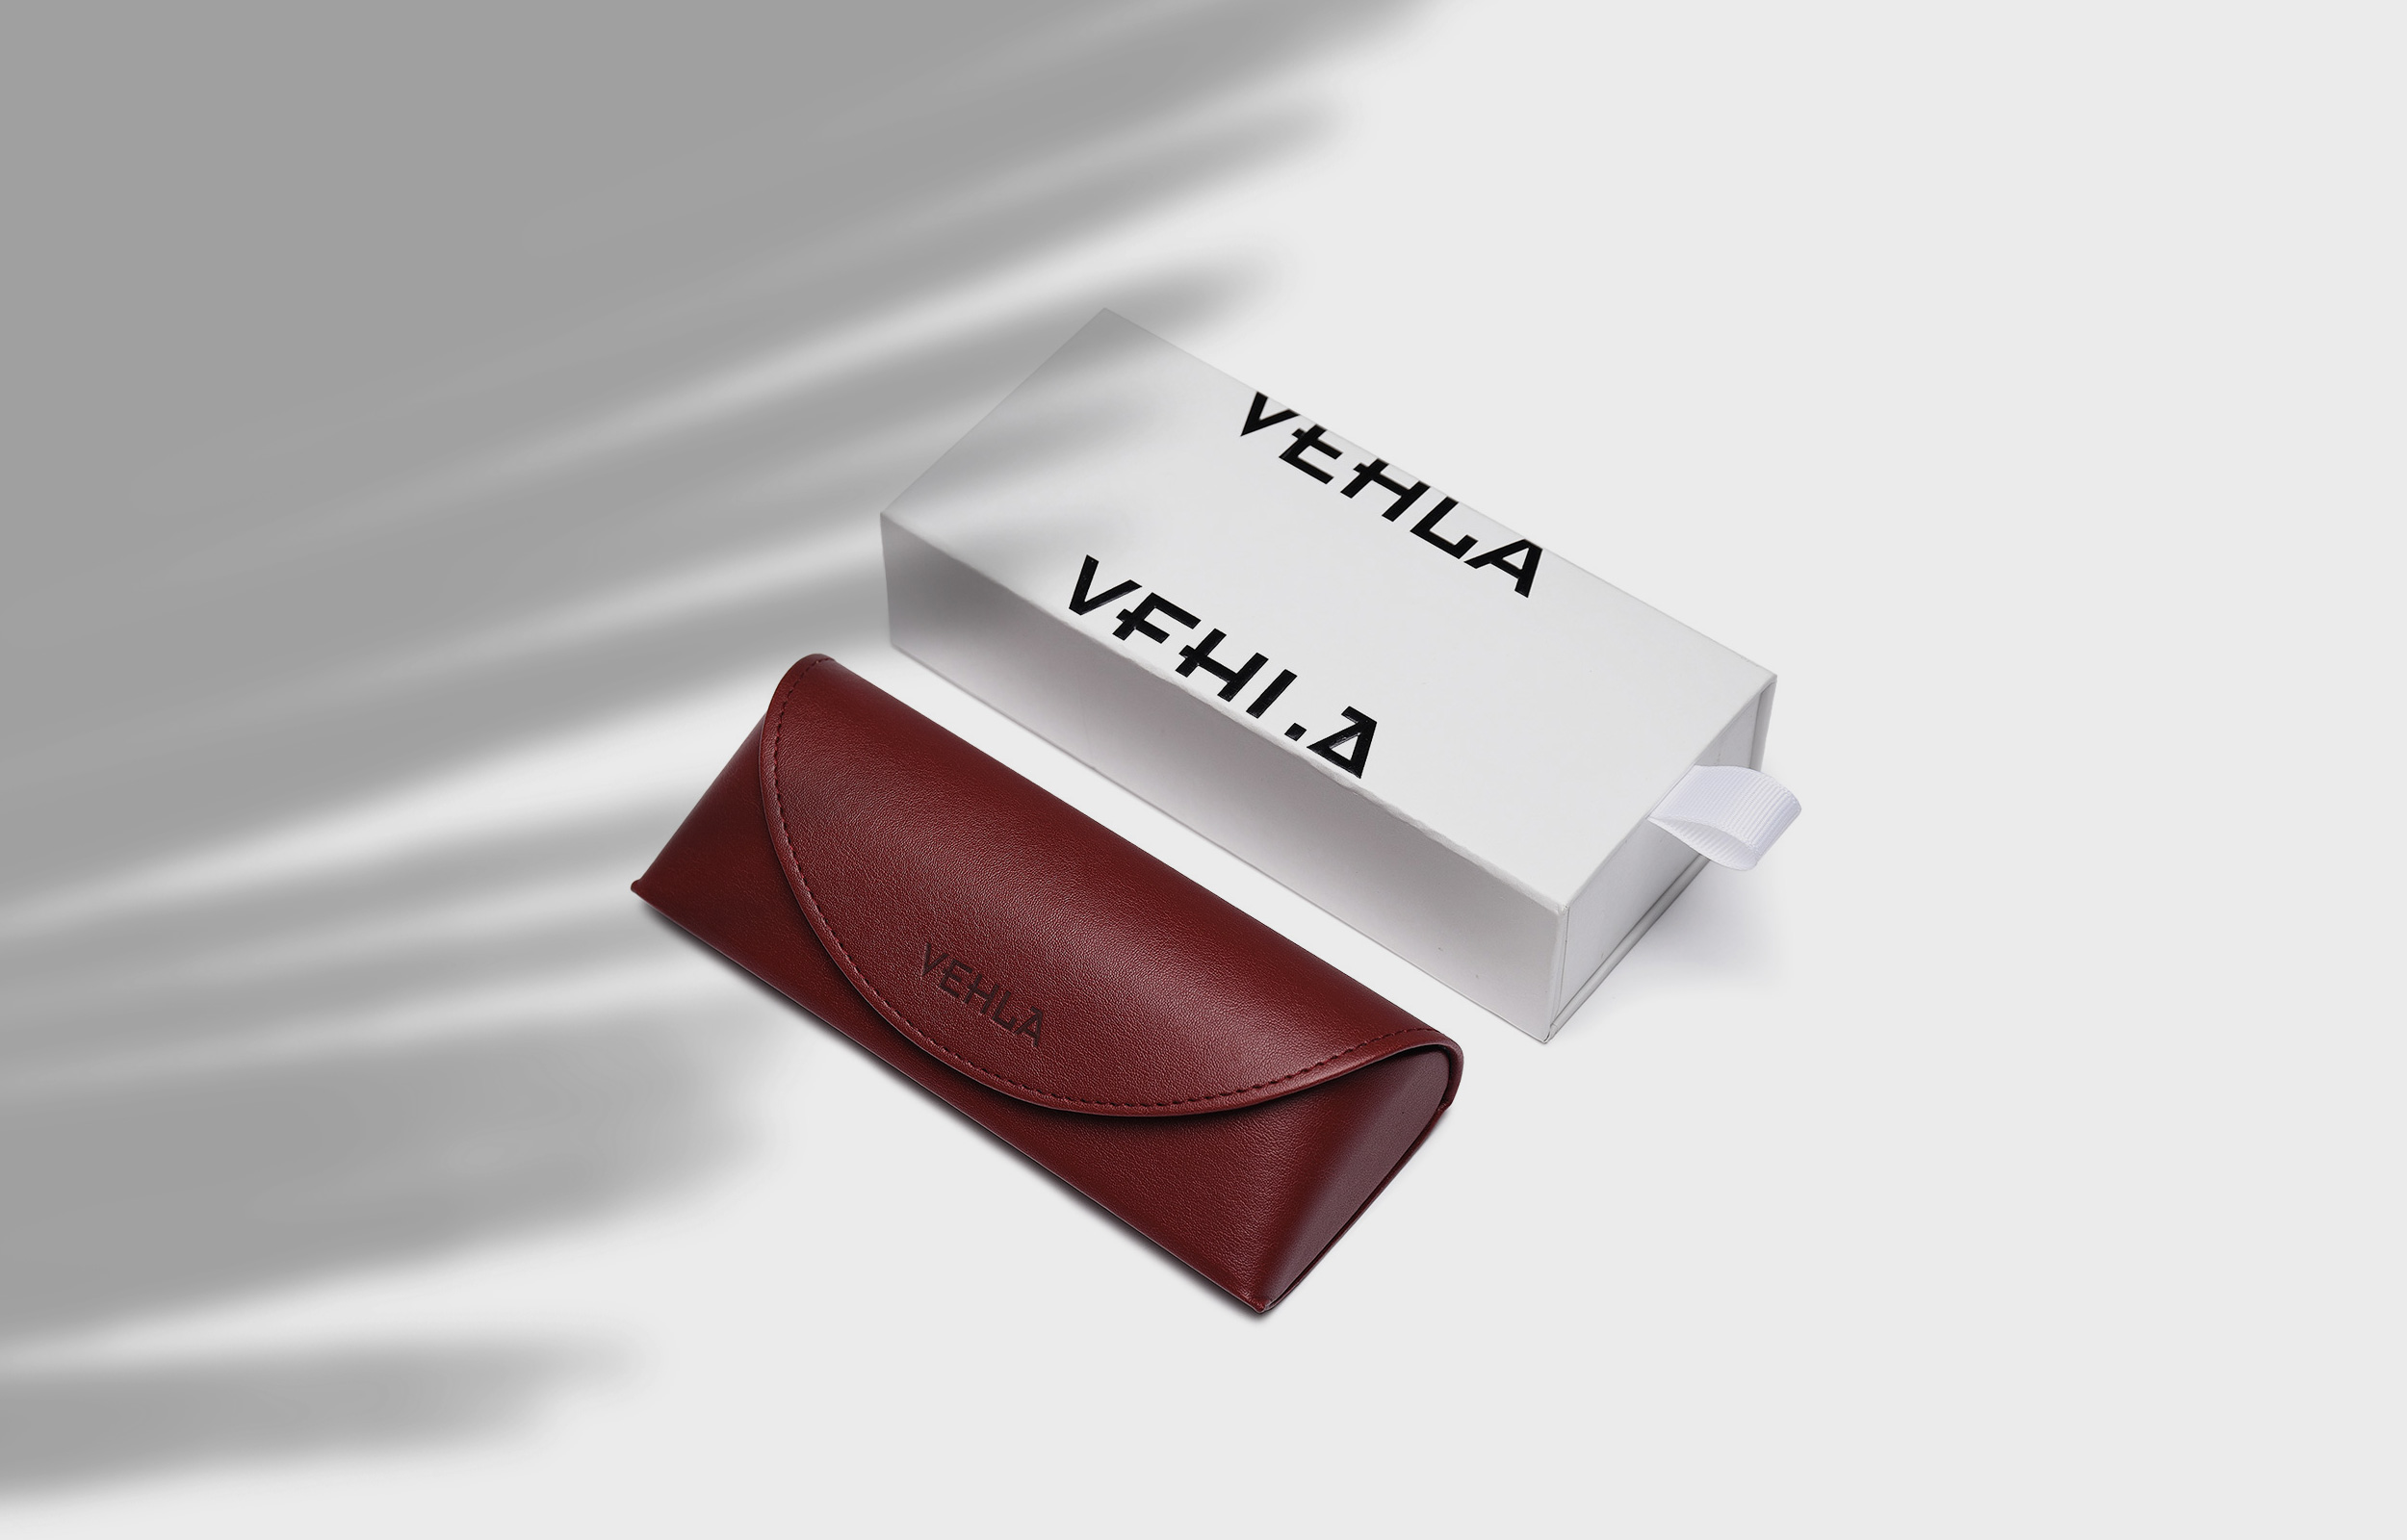 Nectar-&-Co-Vehla-Specs-Packaging Design Agency.jpg